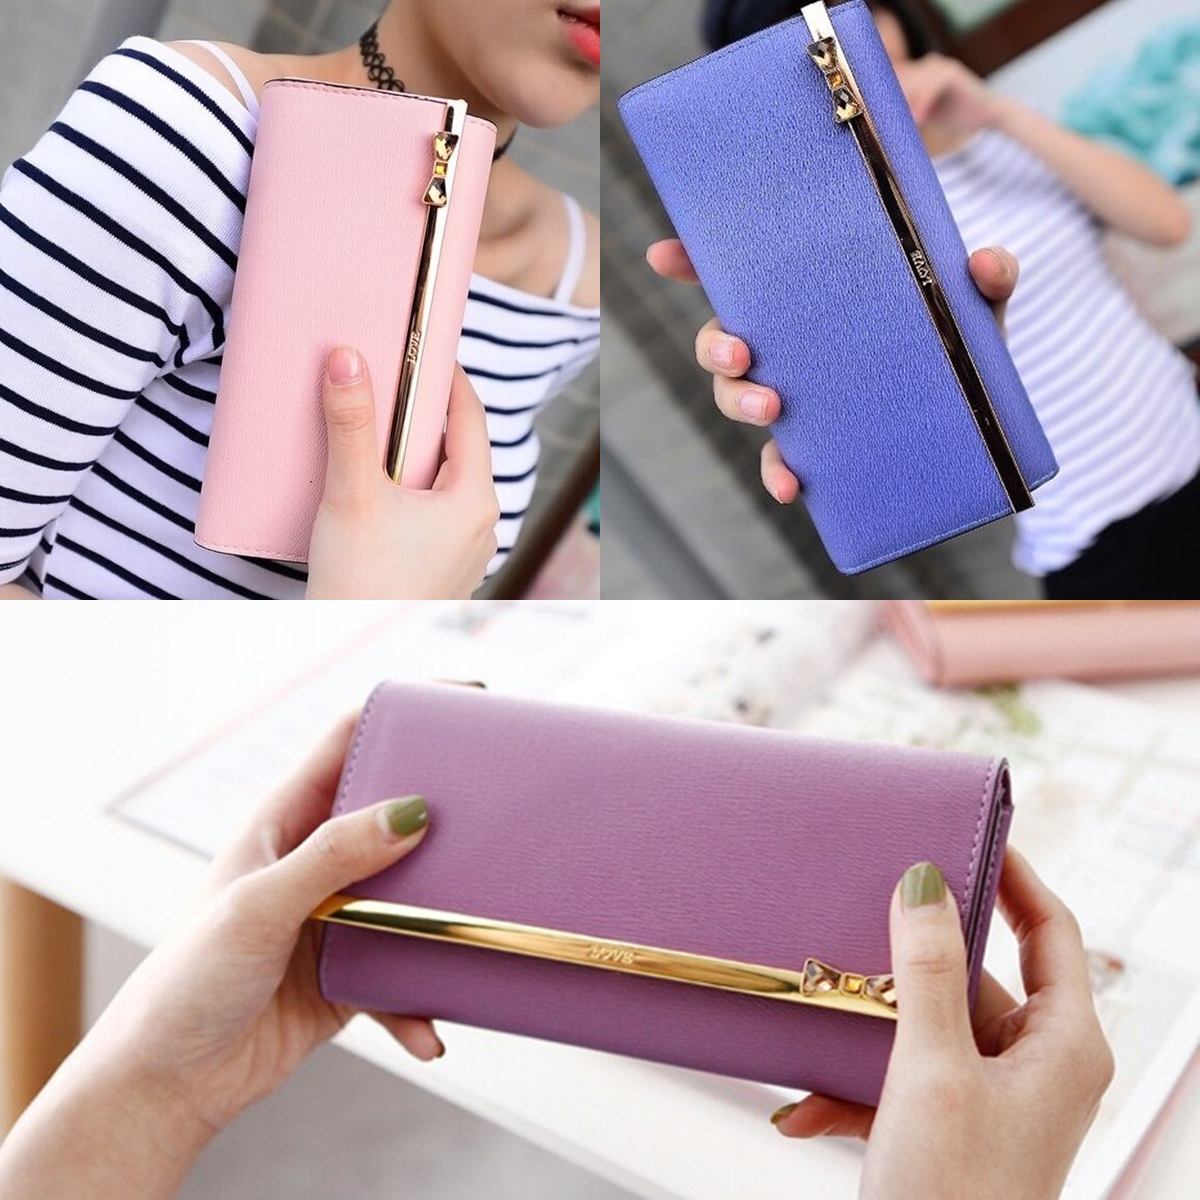 ... Kqueenstar Tosca Review Source · Jims Honey Exclusive Dompet Fashion Import Wanita April Wallet Source Jims Honey Dompet Fashion Wanita